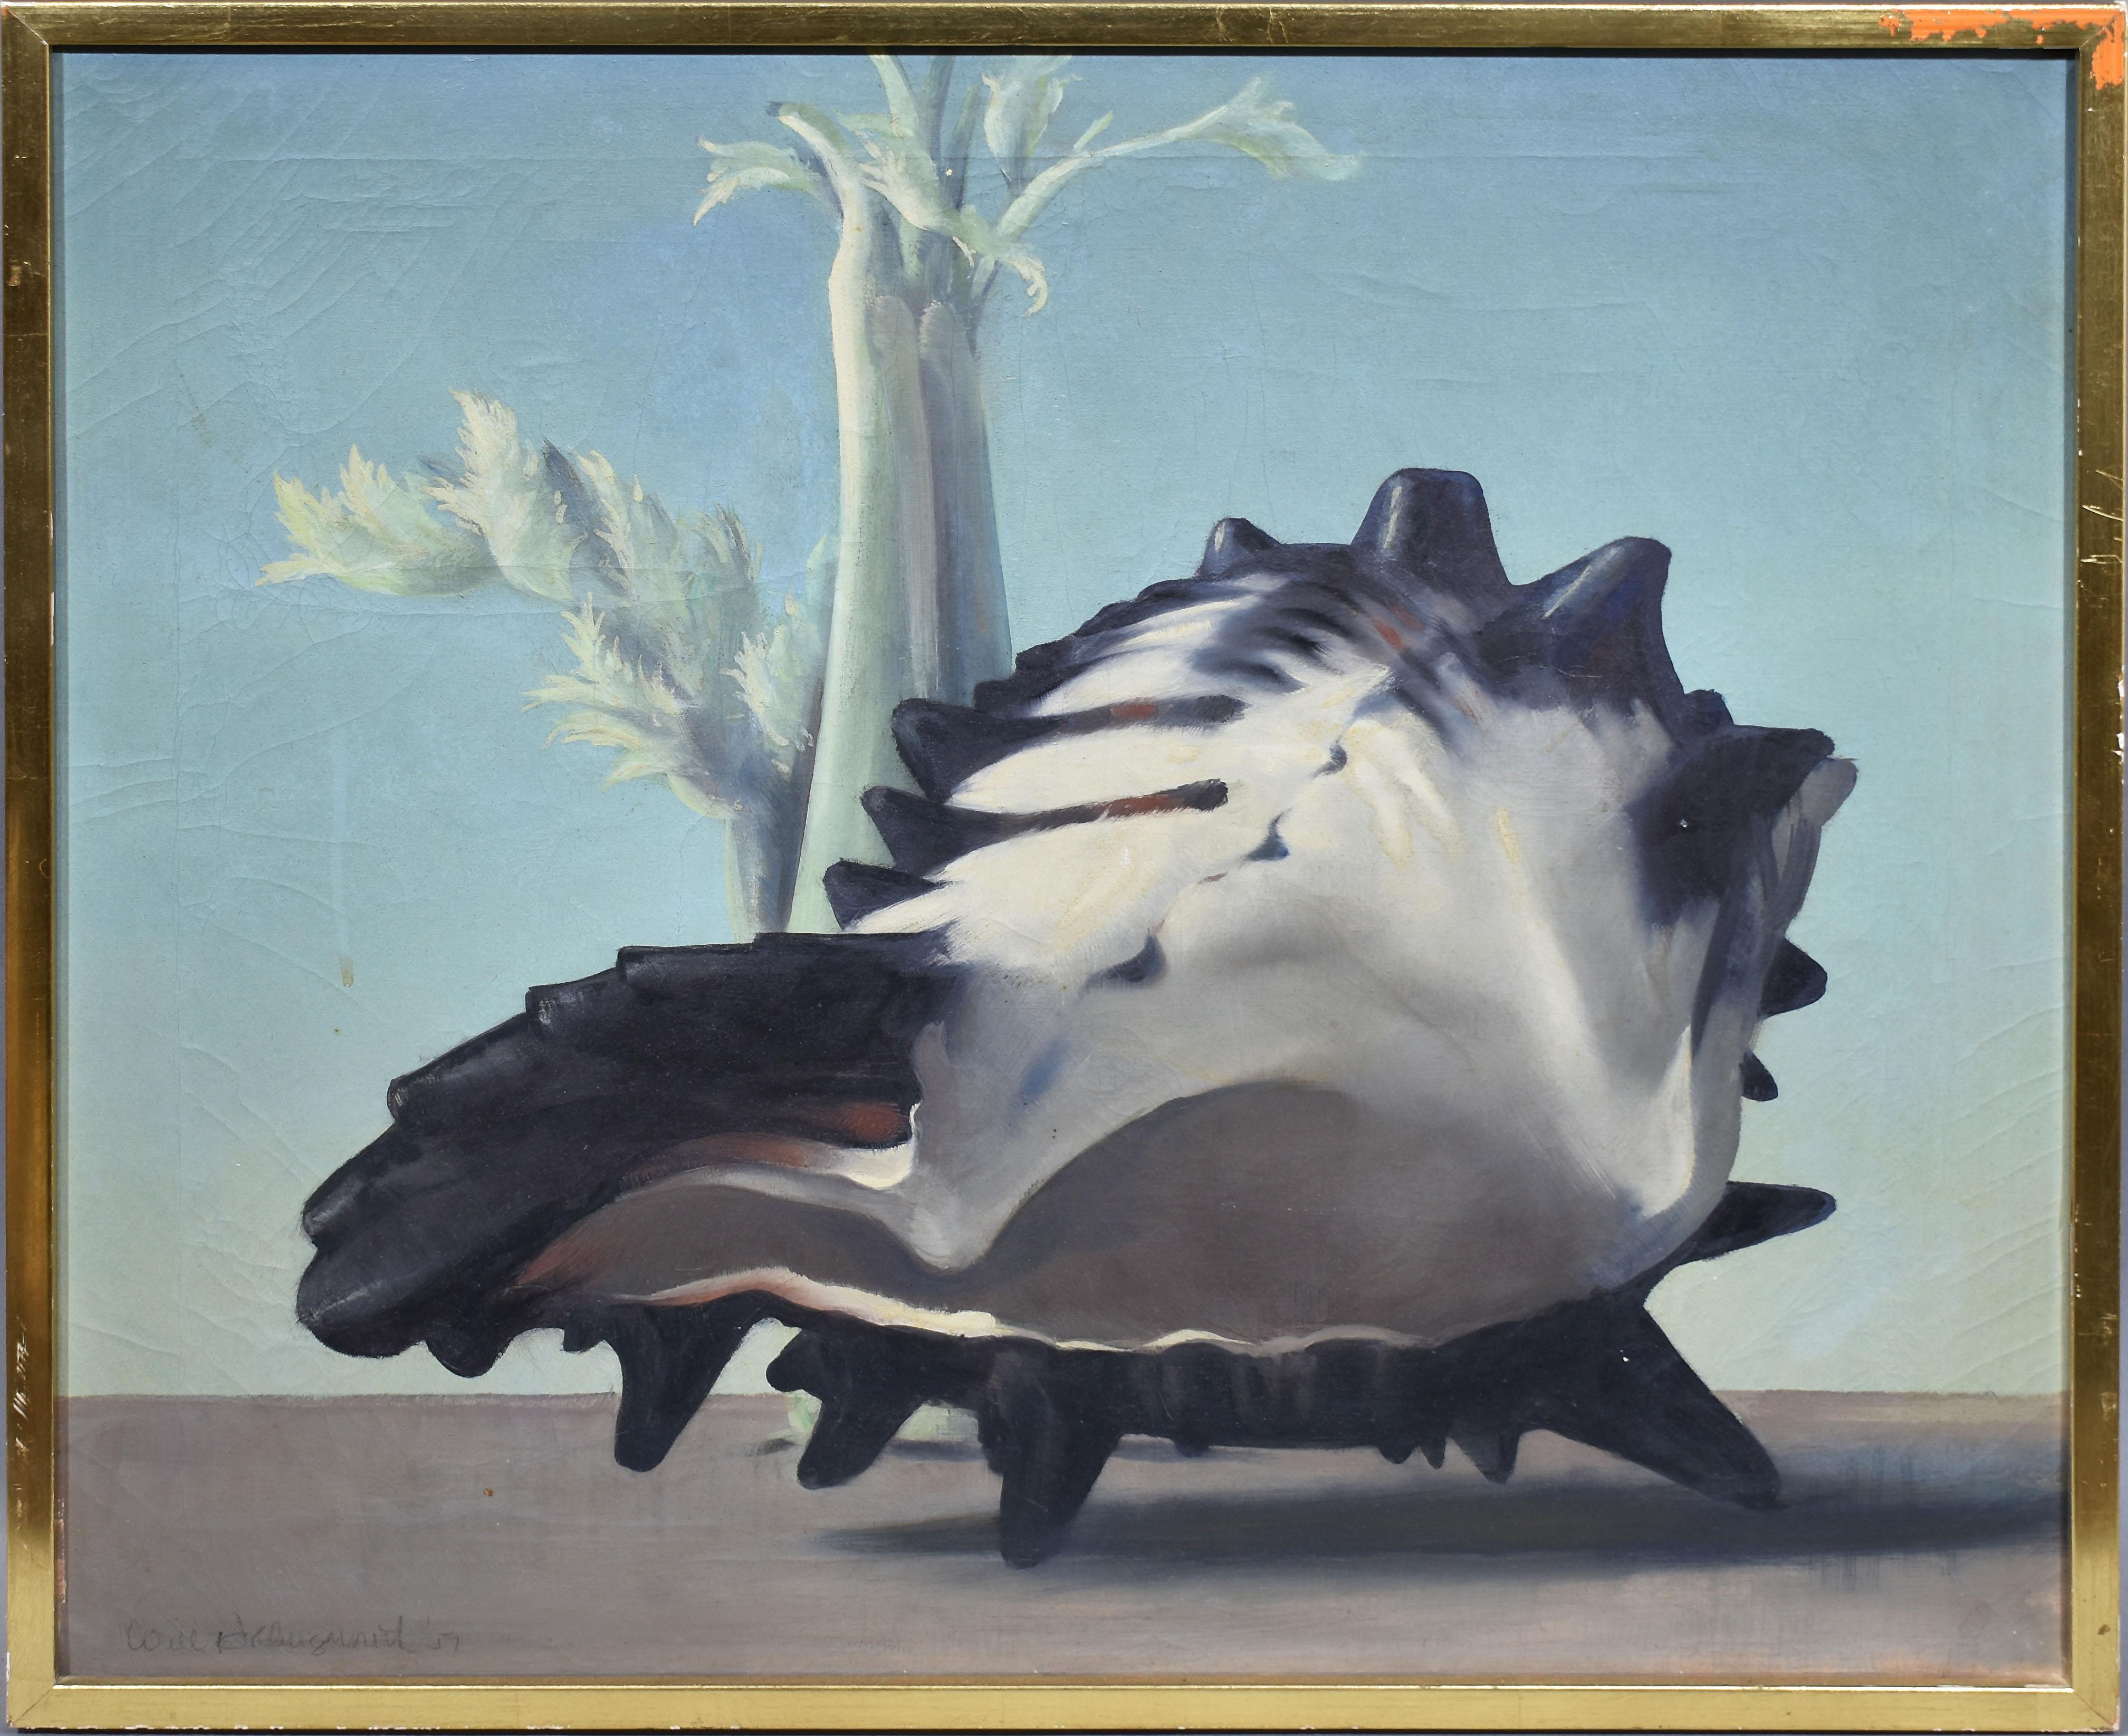 Antique American Surreal Landscape with Conch Shell by Will Hollingsworth